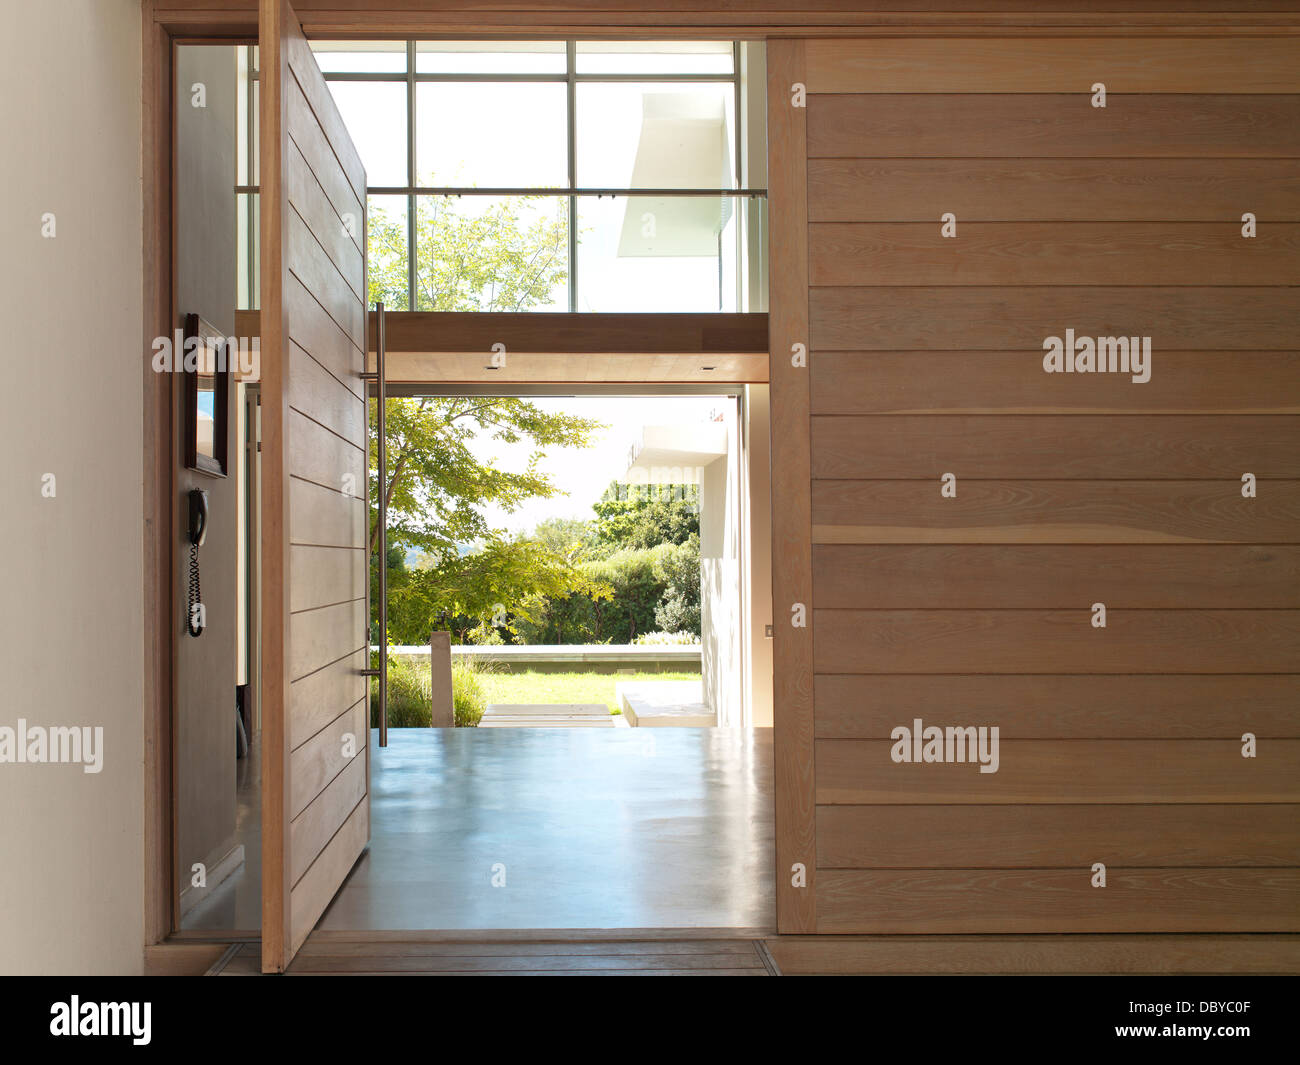 Open door in modern house Photo Stock